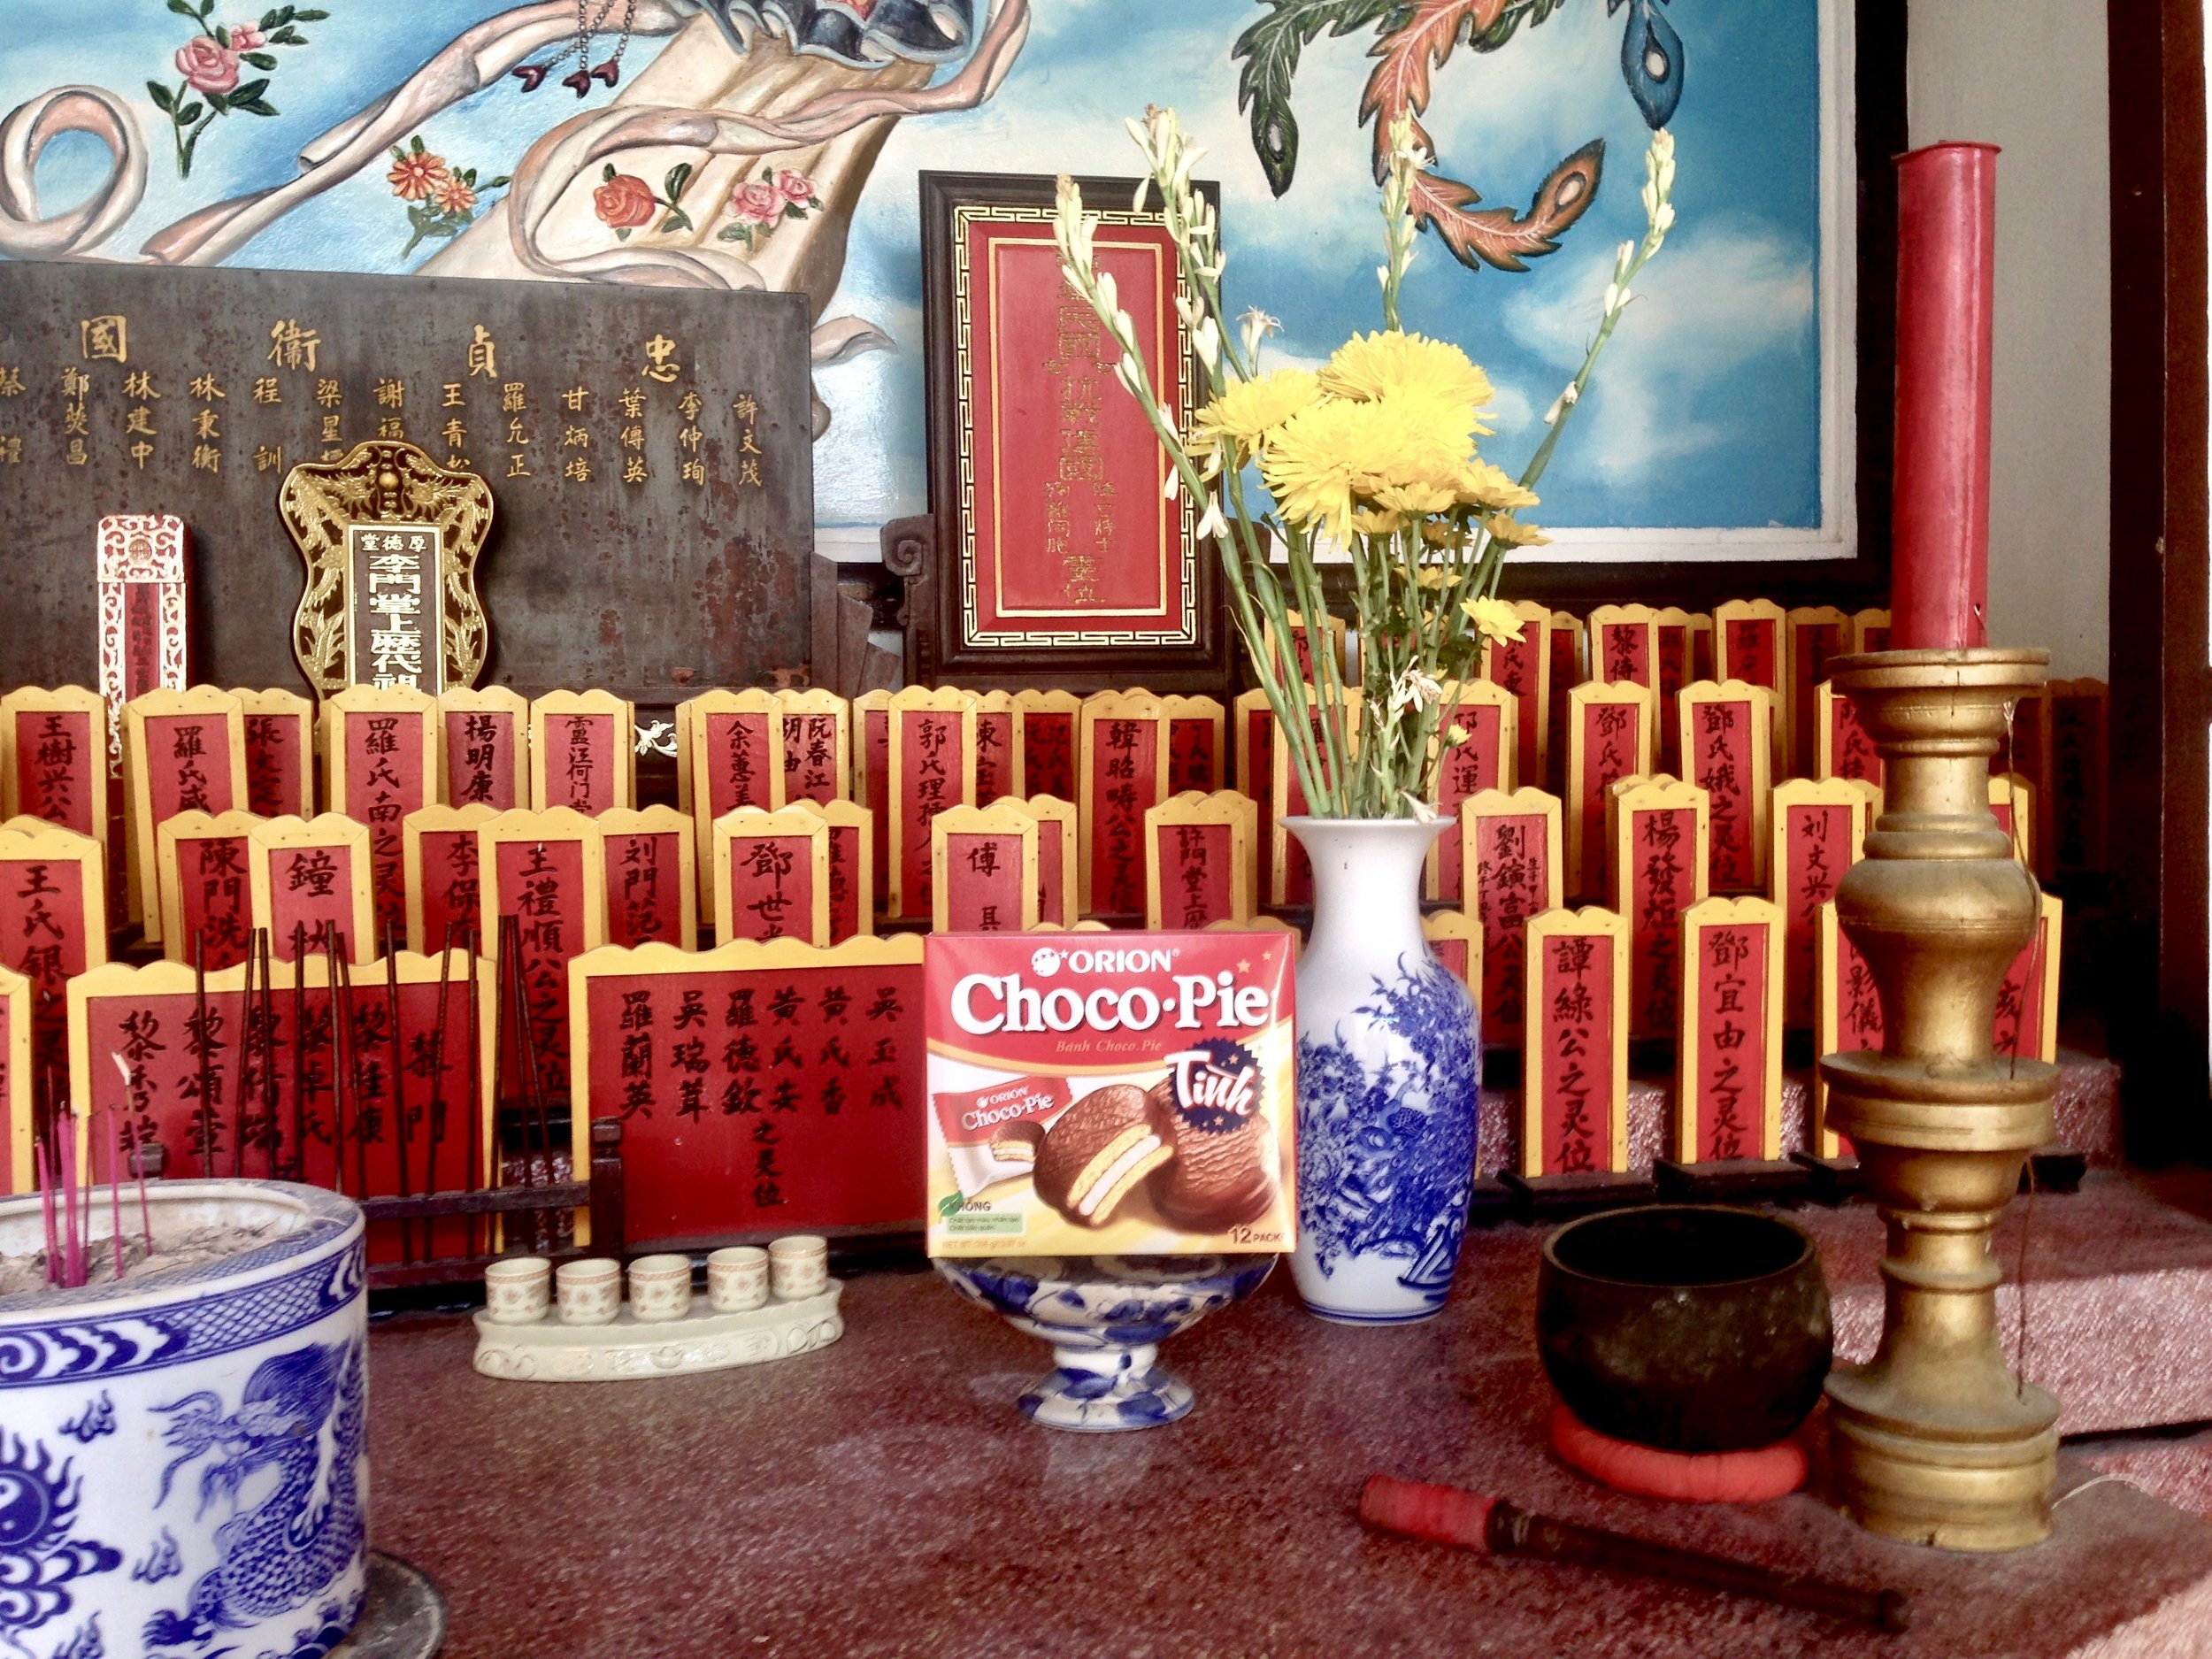 Choco-pies are the main attraction of altars, who knew??